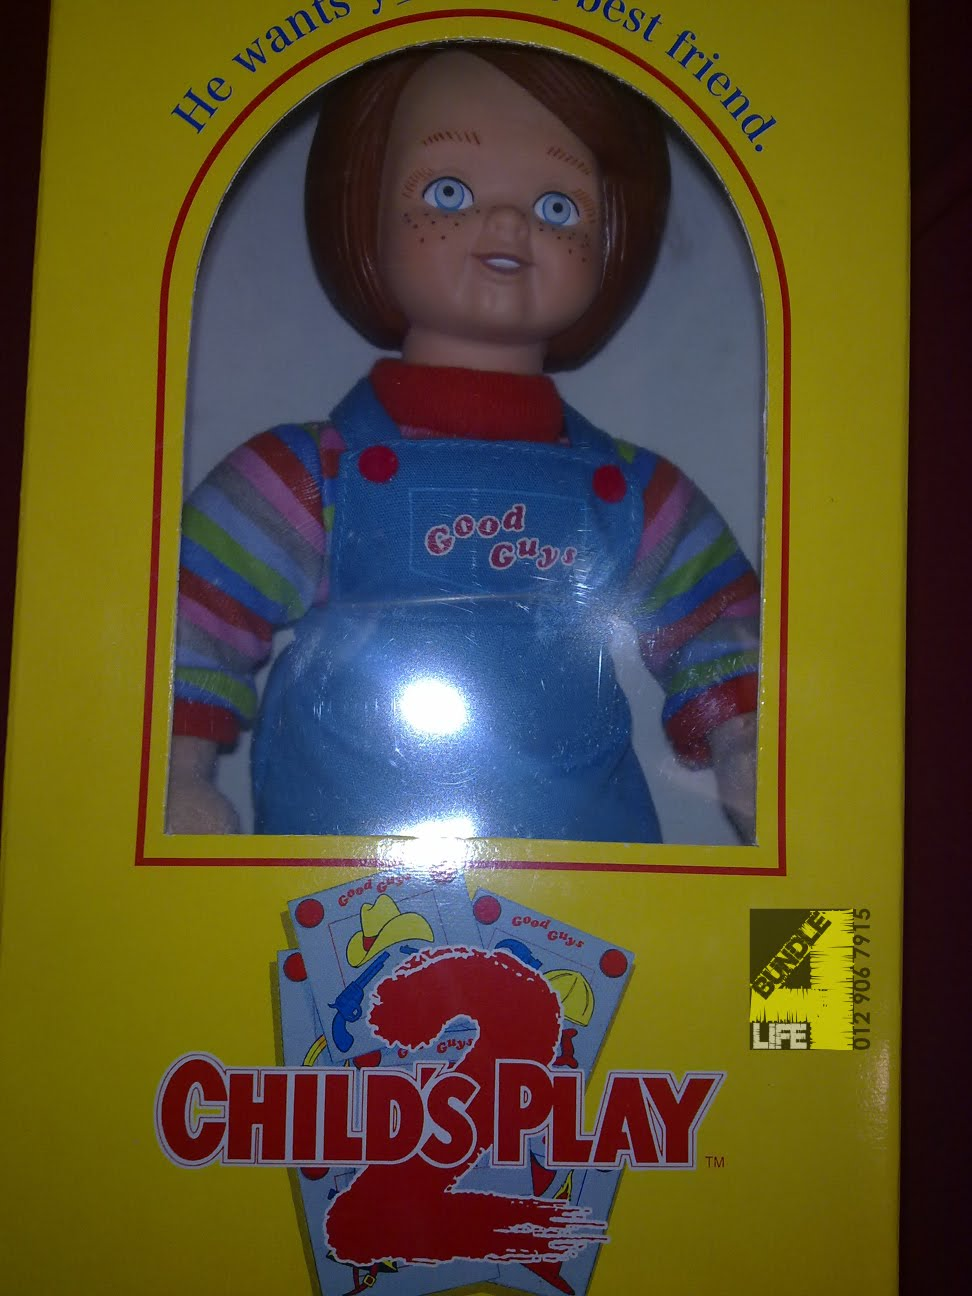 Childs Play Good Guy Doll http://bundle4life.blogspot.com/2011/10/childs-play-2-good-guychucky-doll.html